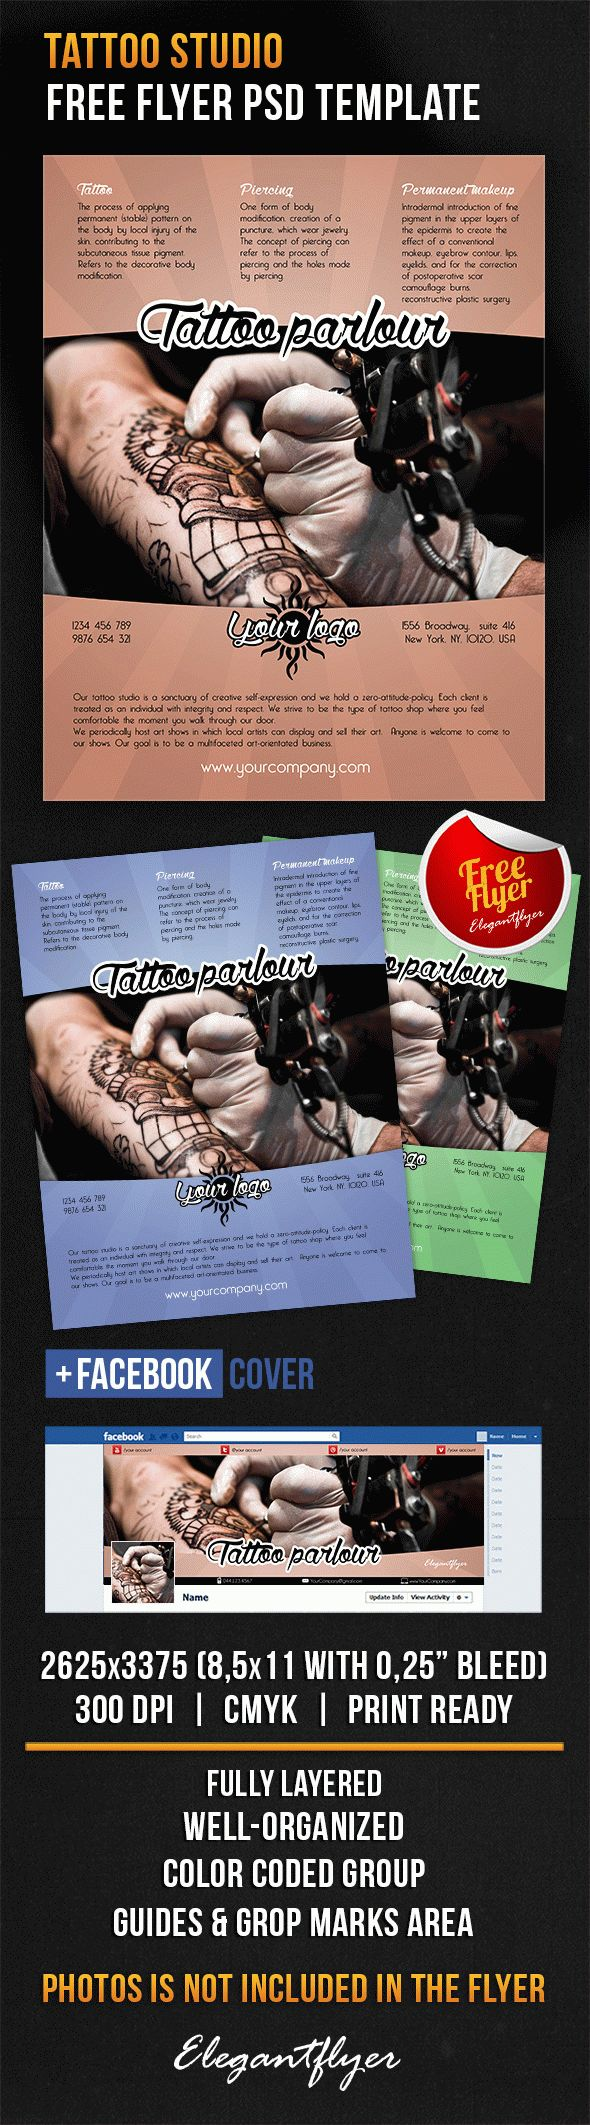 Tattoo studio – Free Flyer PSD Template + Facebook Cover